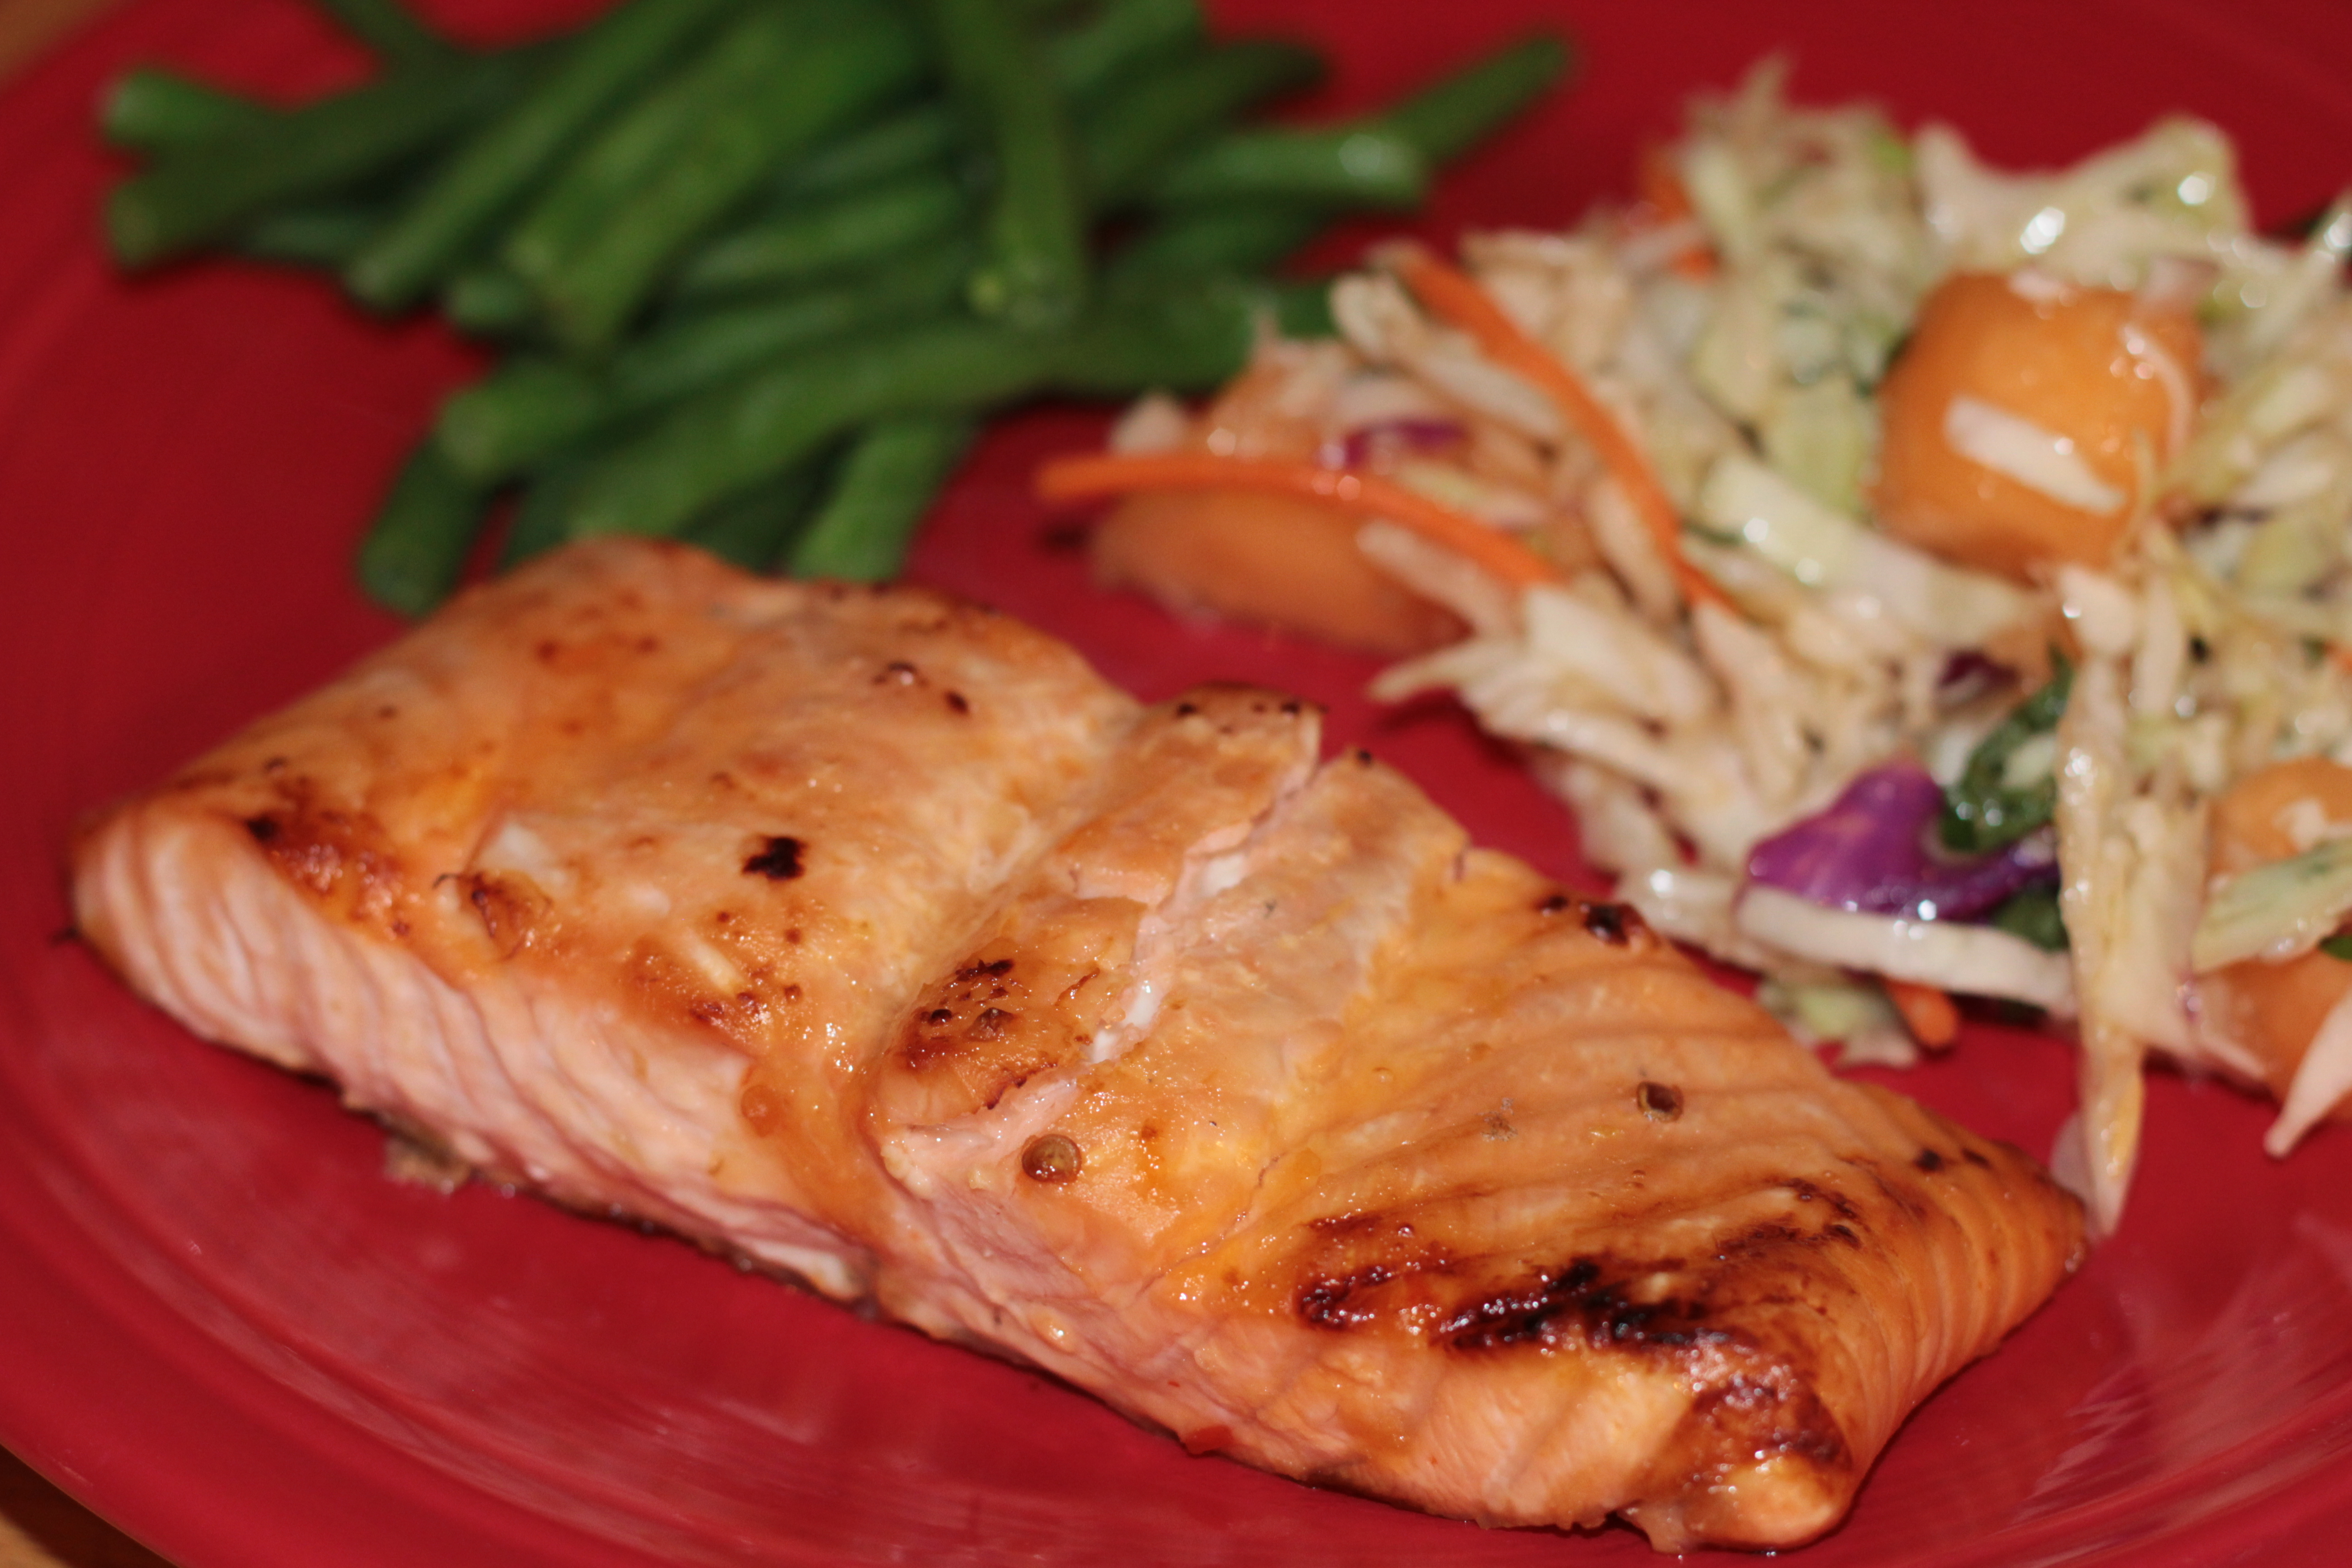 Broiled Salmon with Chili Lime Glaze | Hollie's Hobbies